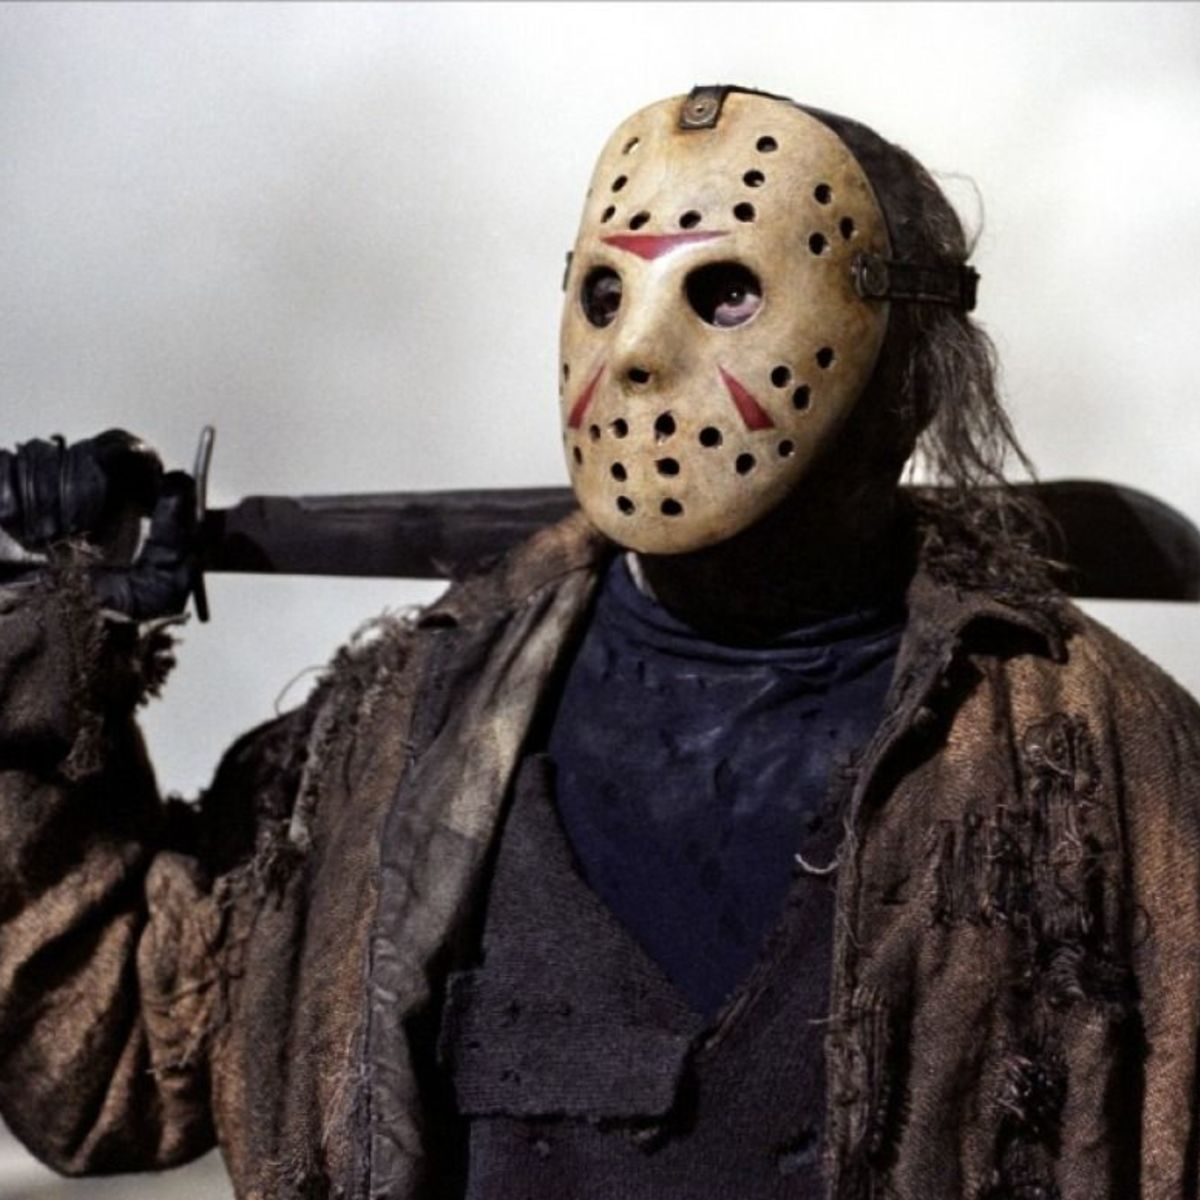 A New Friday The 13th Movie Is Coming, Thanks To LeBron James